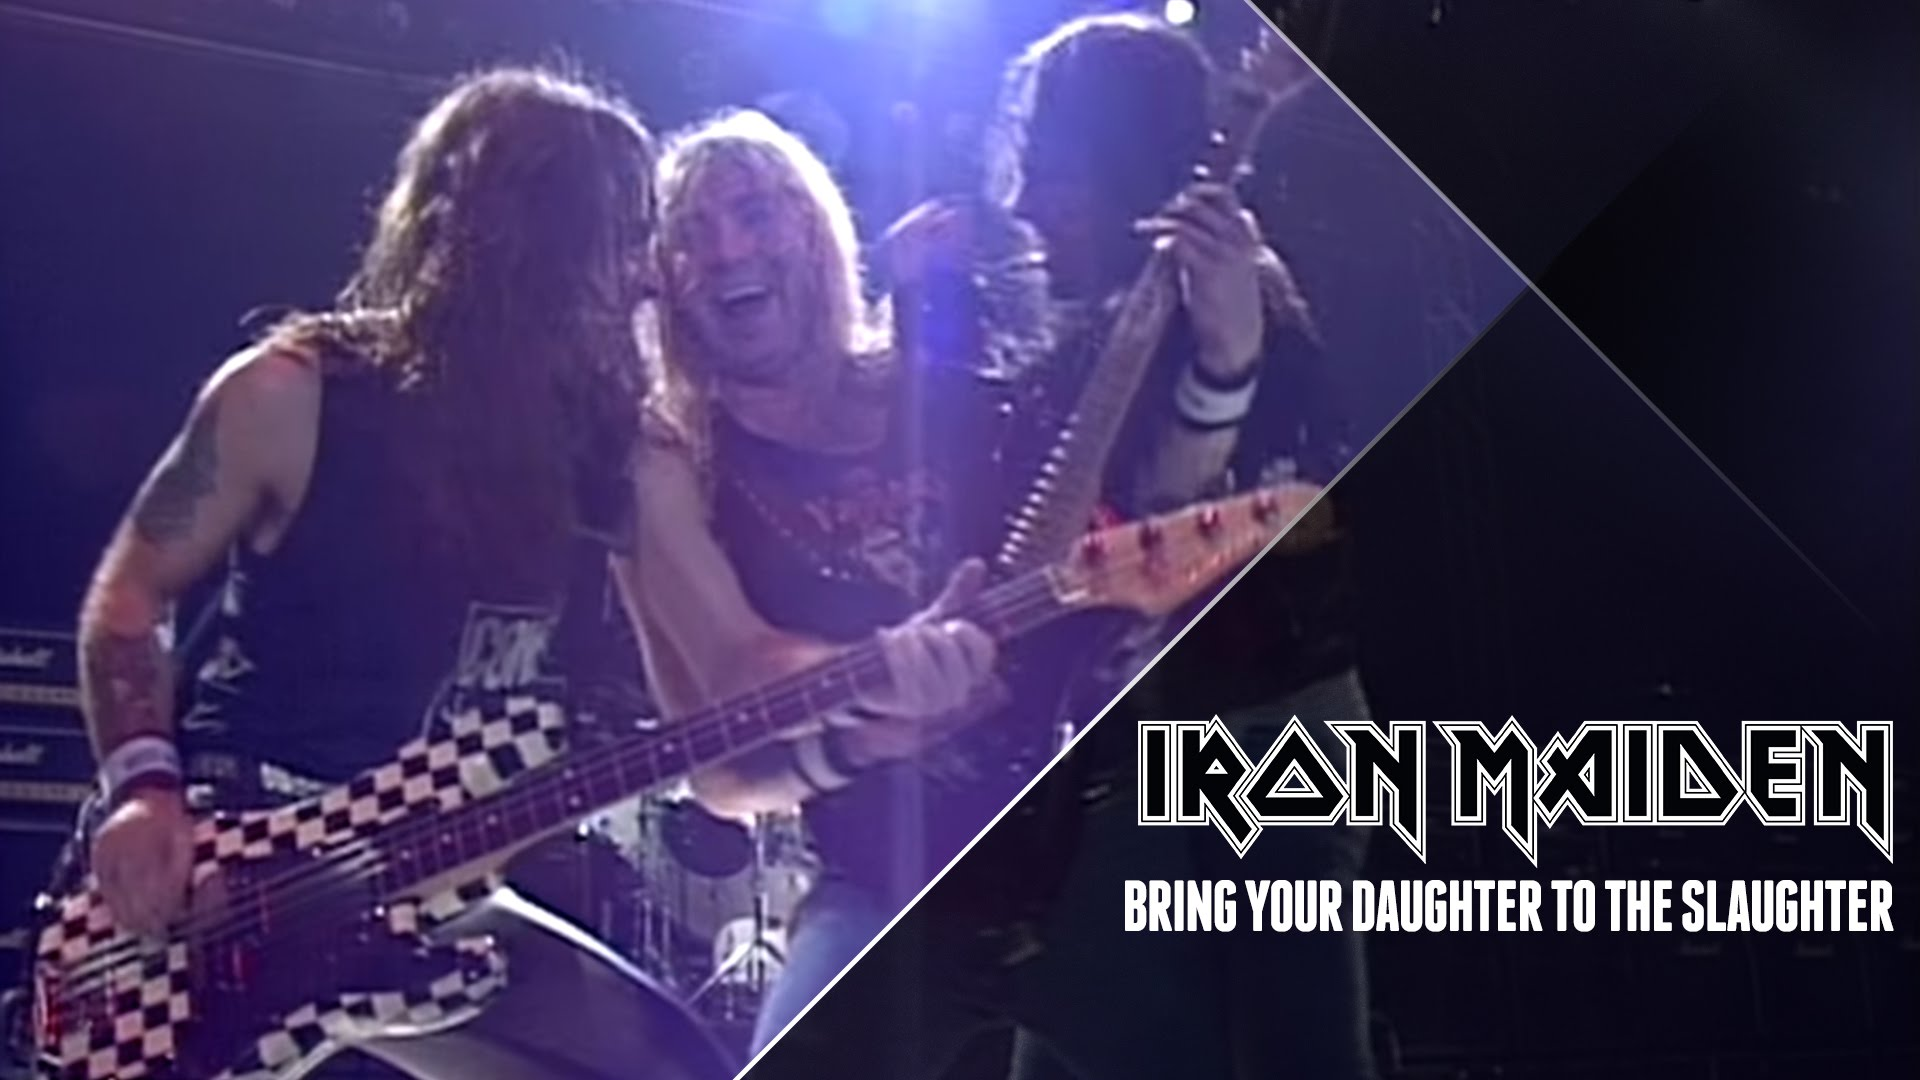 Iron Maiden – Bring Your Daughter To The Slaughter